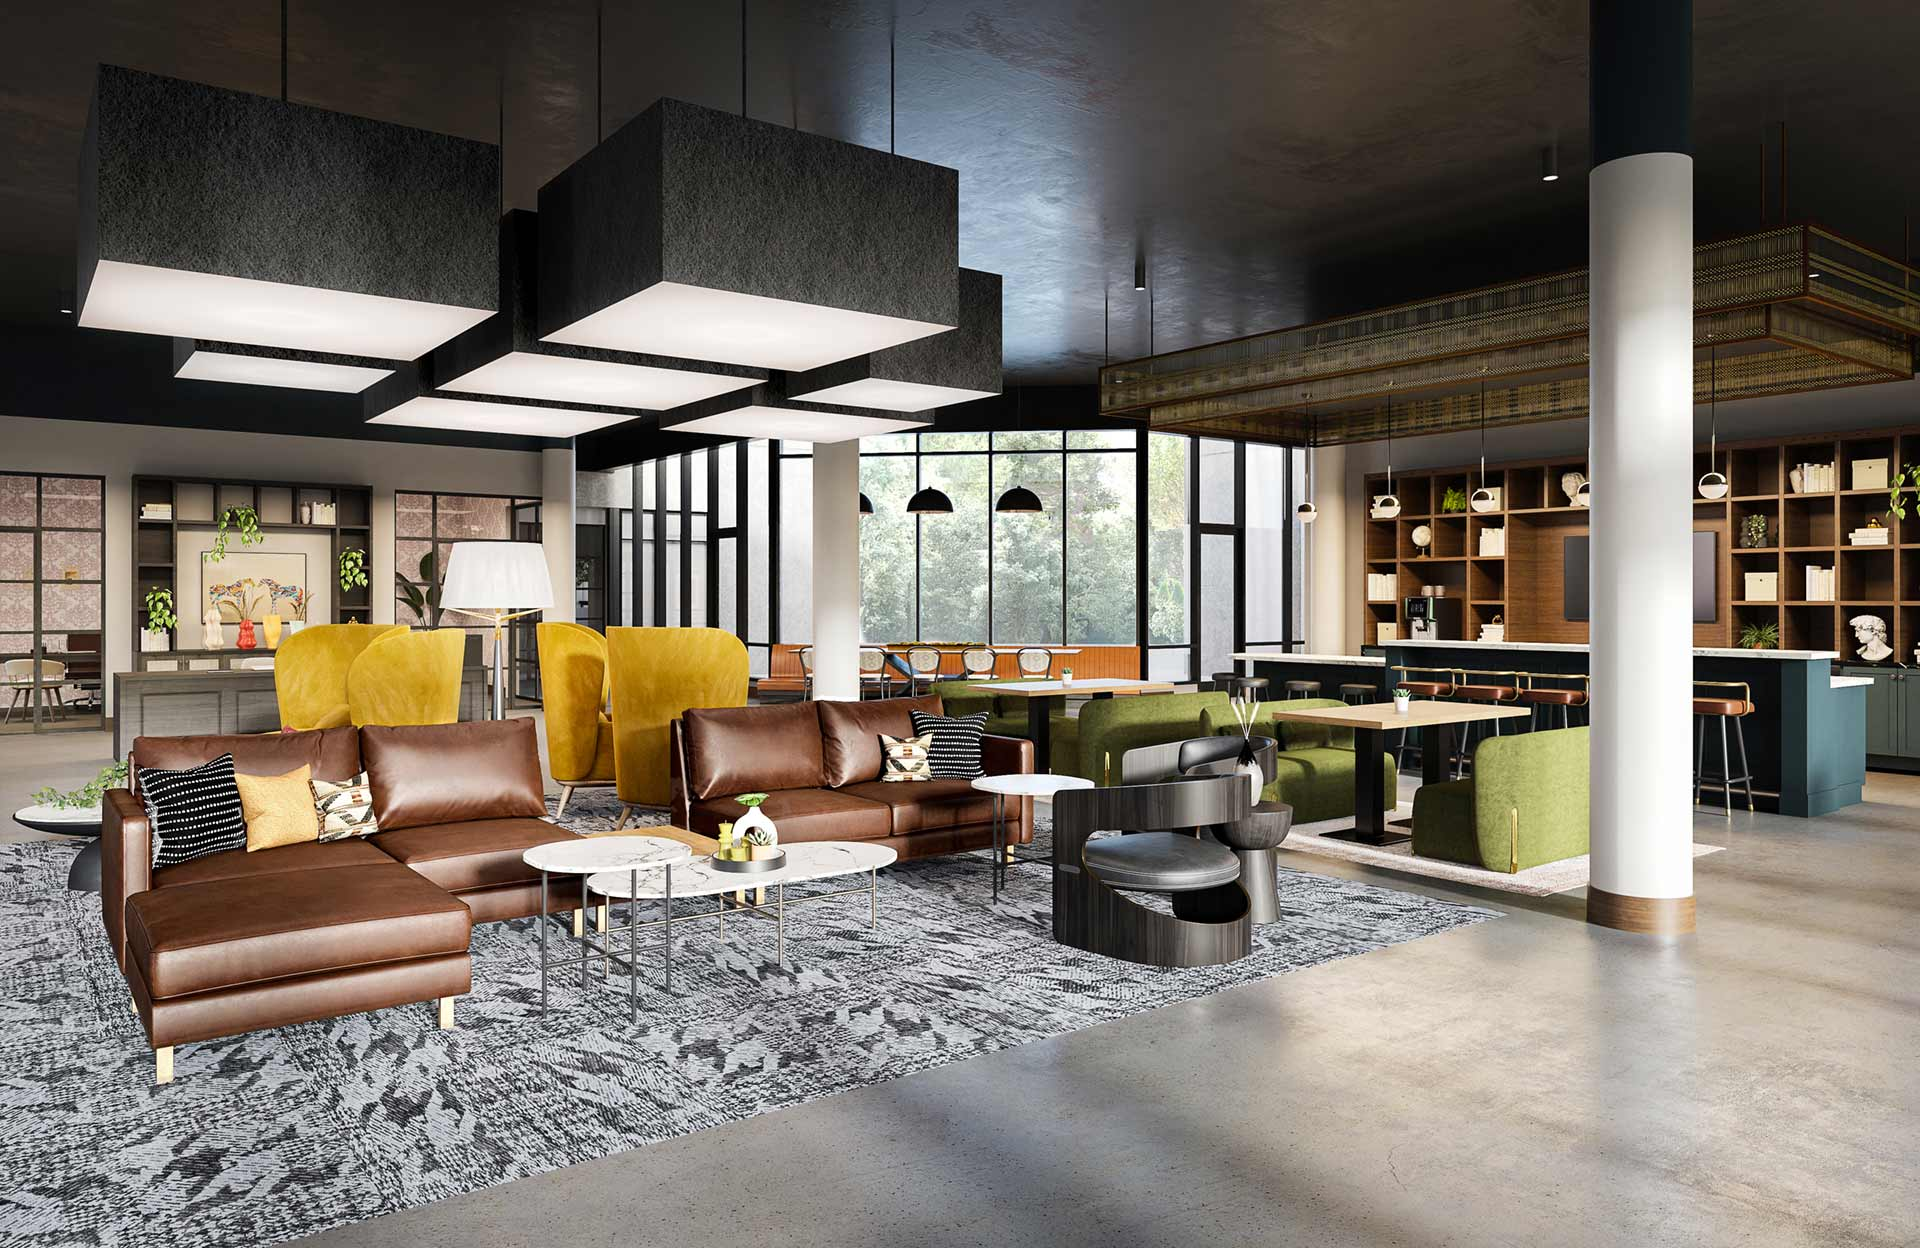 Lobby with seating, windows and ample lighting